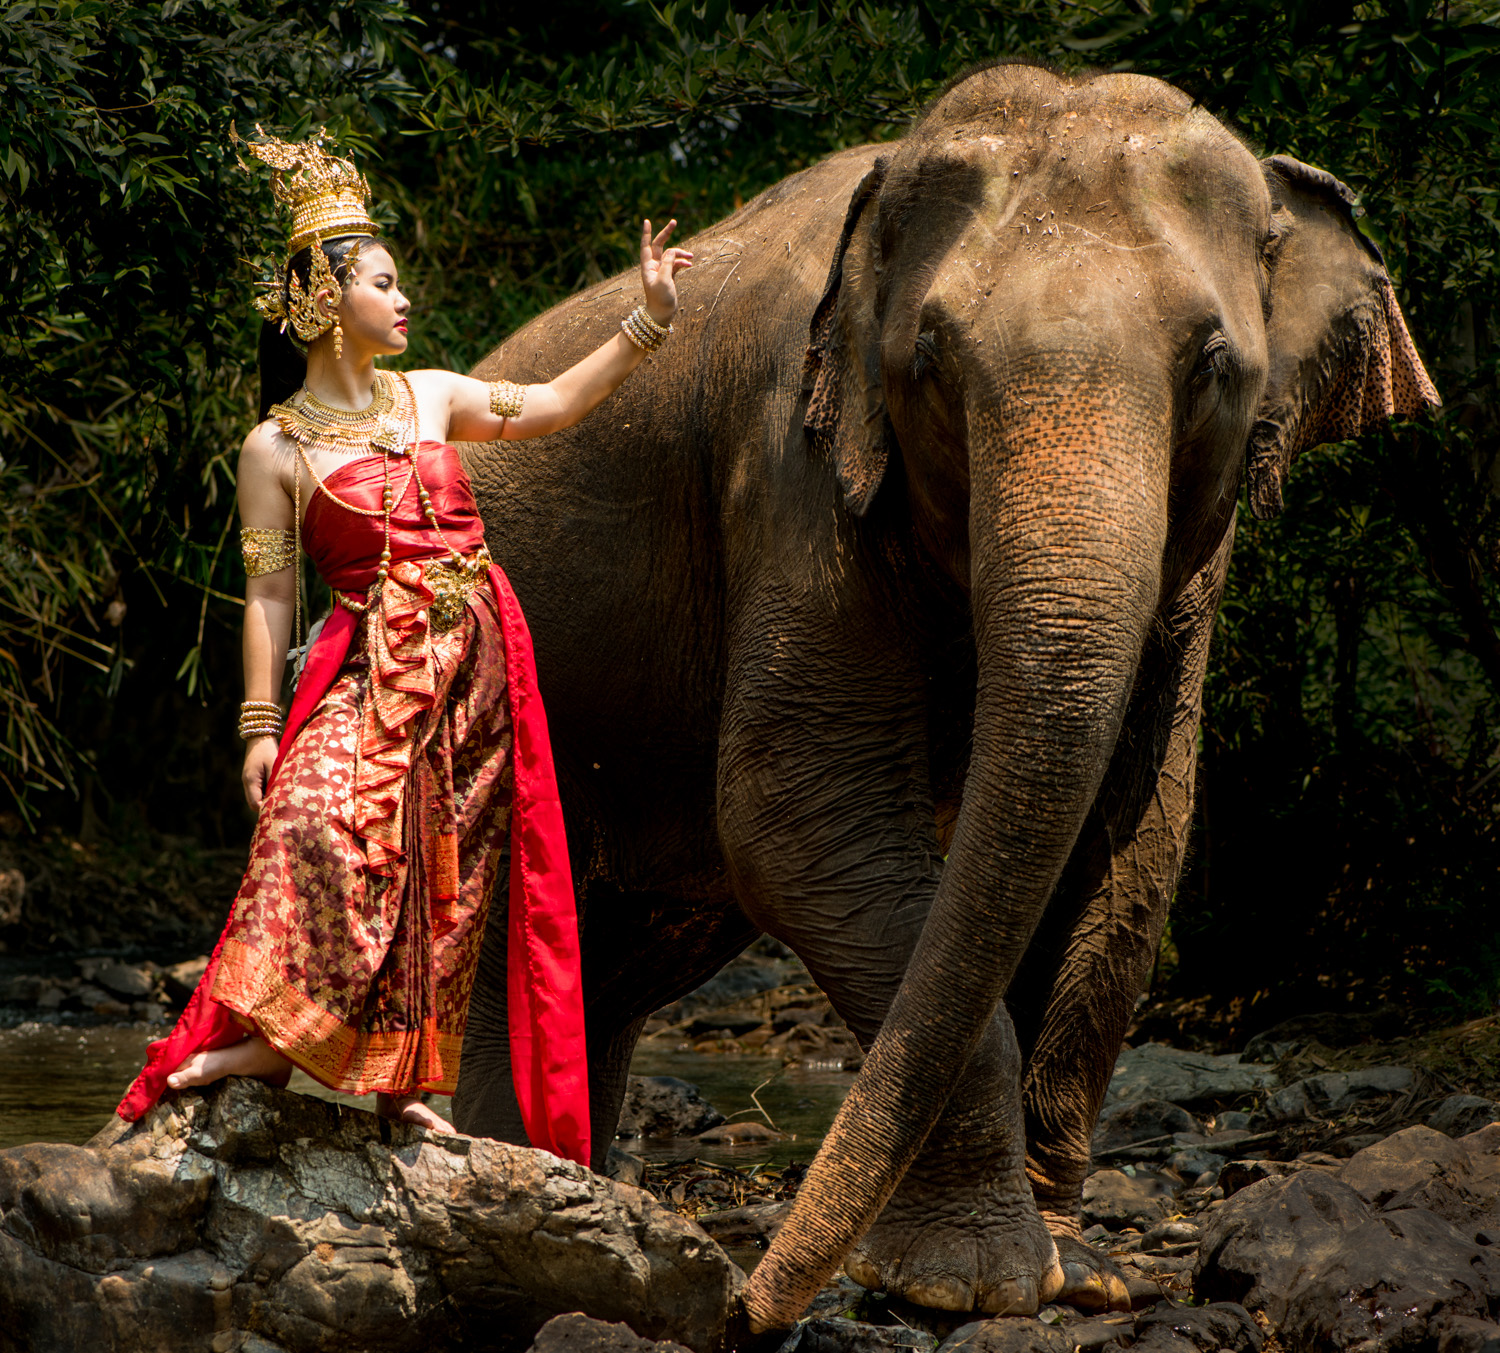 https://i0.wp.com/digital-photography-school.com/wp-content/uploads/2019/07/Thai-Model-and-Elephant-21a.jpg?resize=1500%2C1353&ssl=1